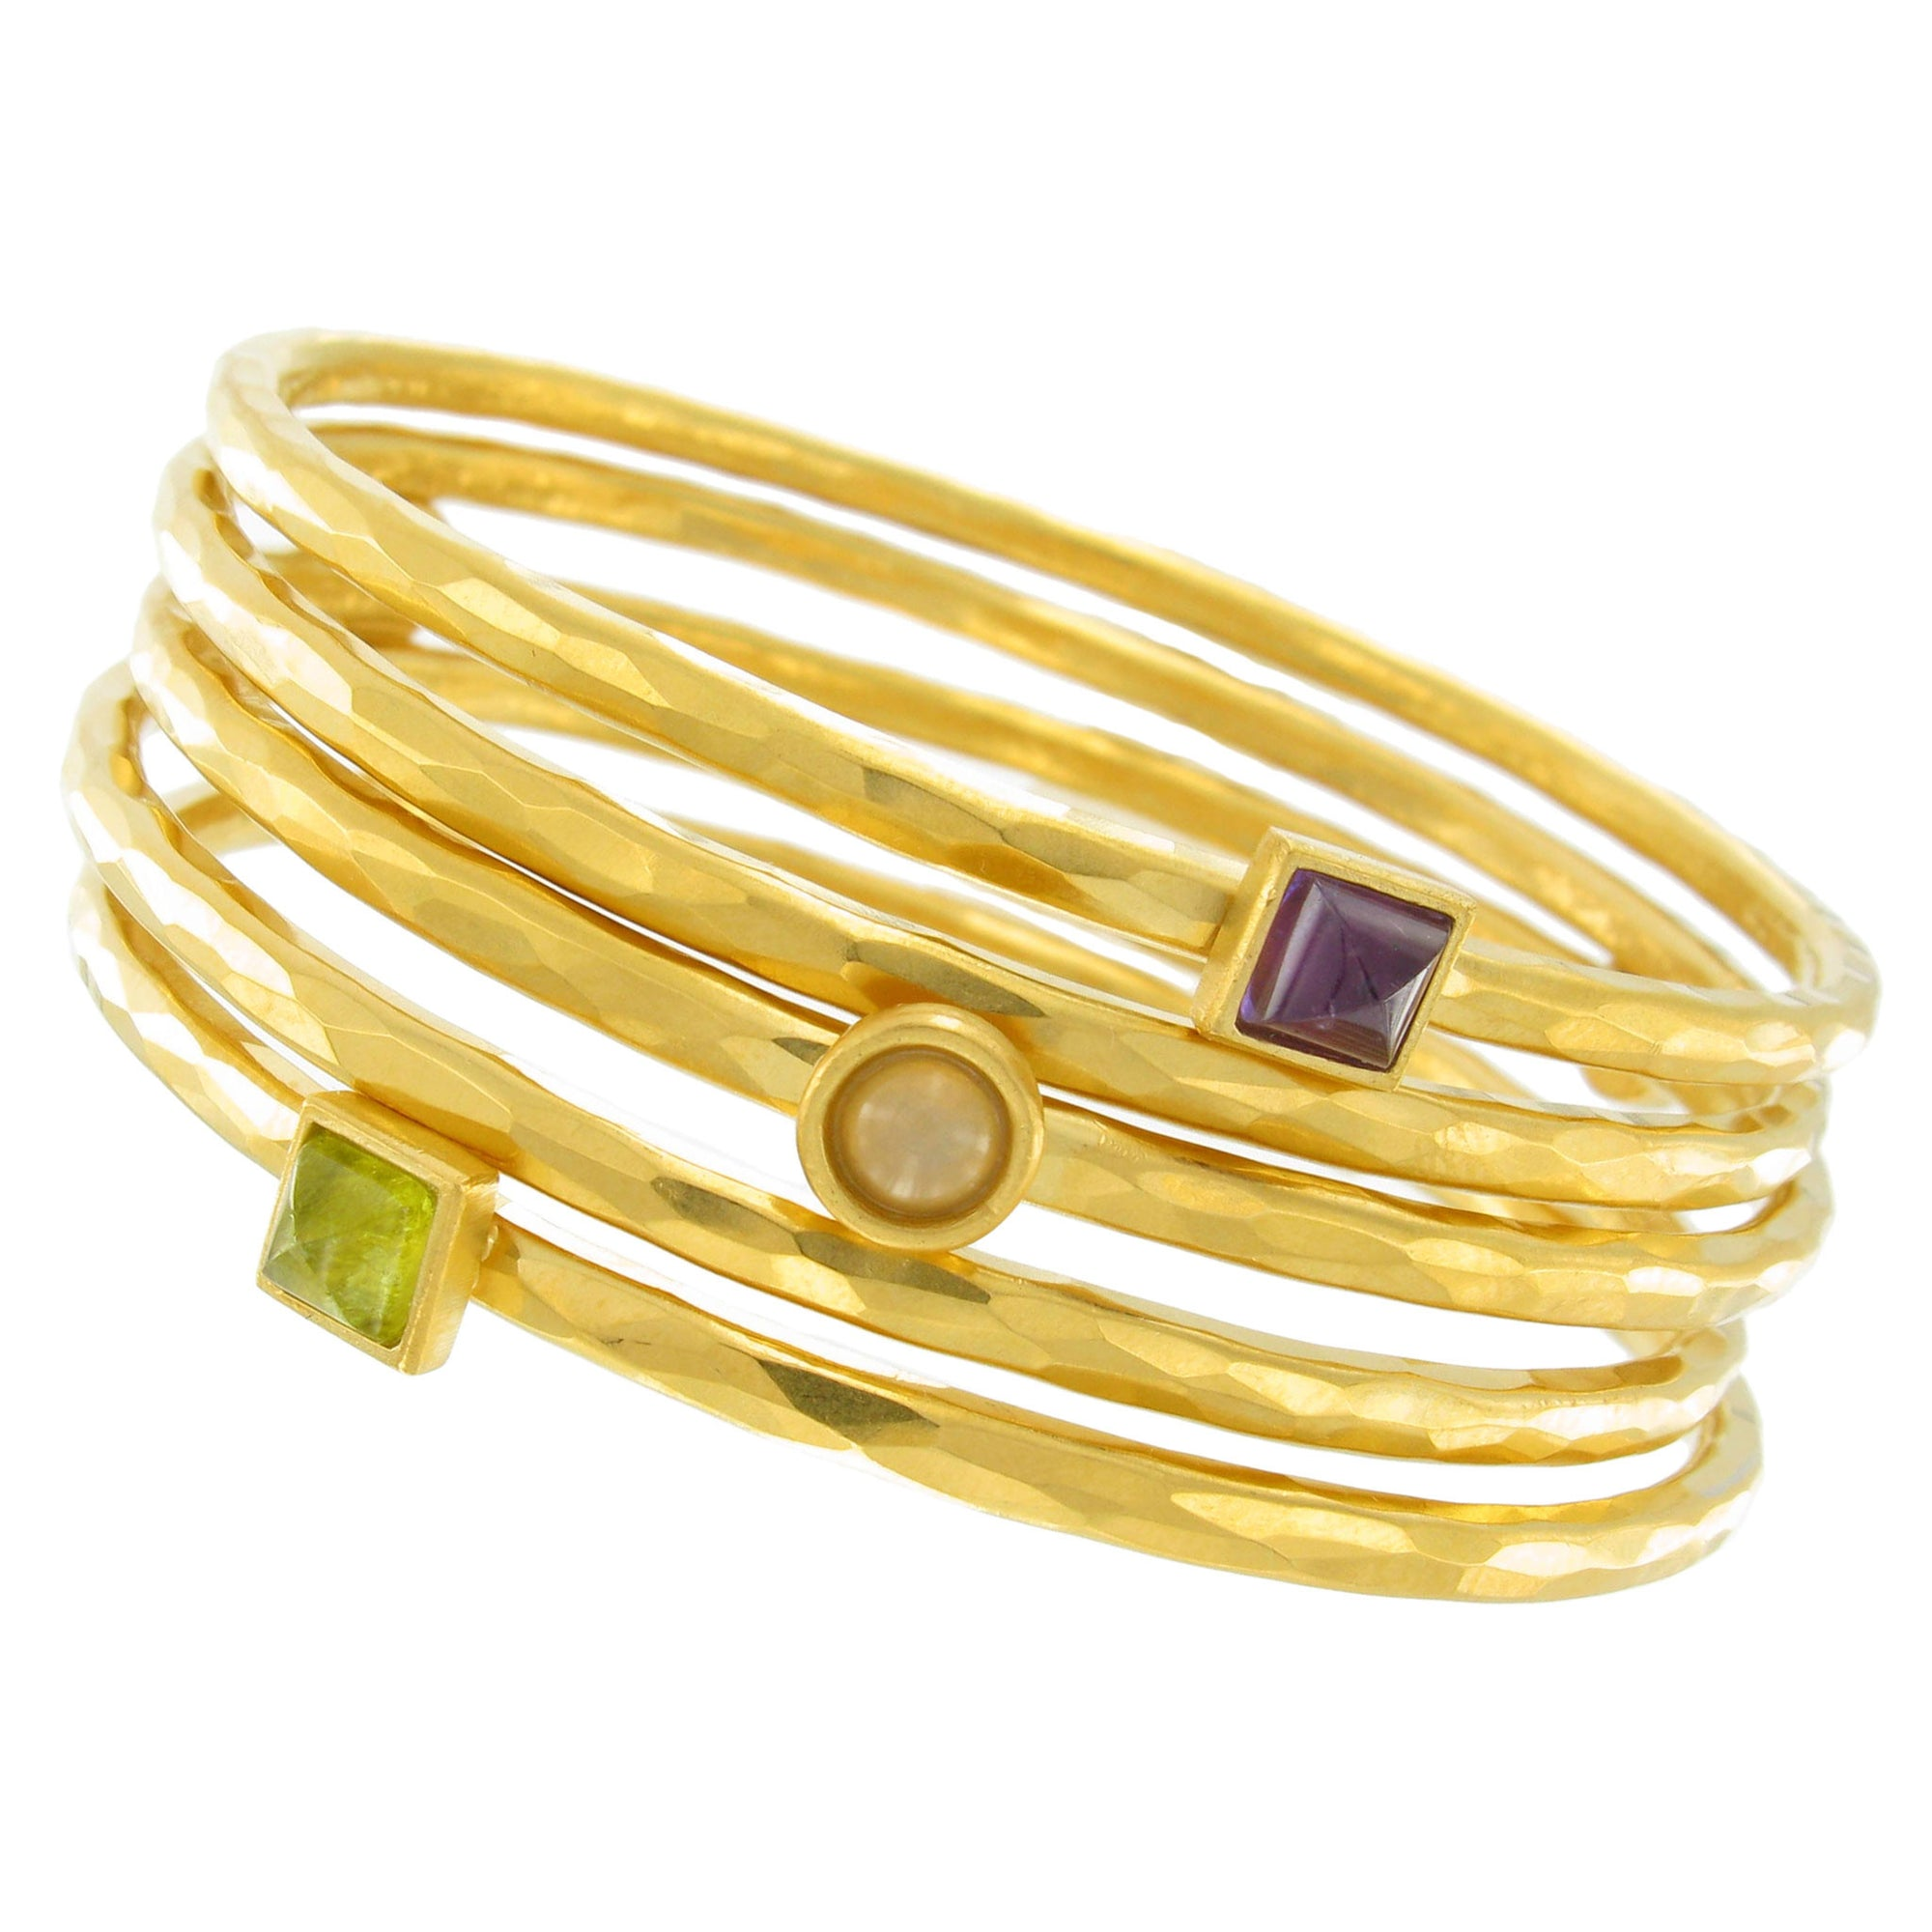 jodhpur wikipedia glass india for in made bangles wiki stacked of bangle sale